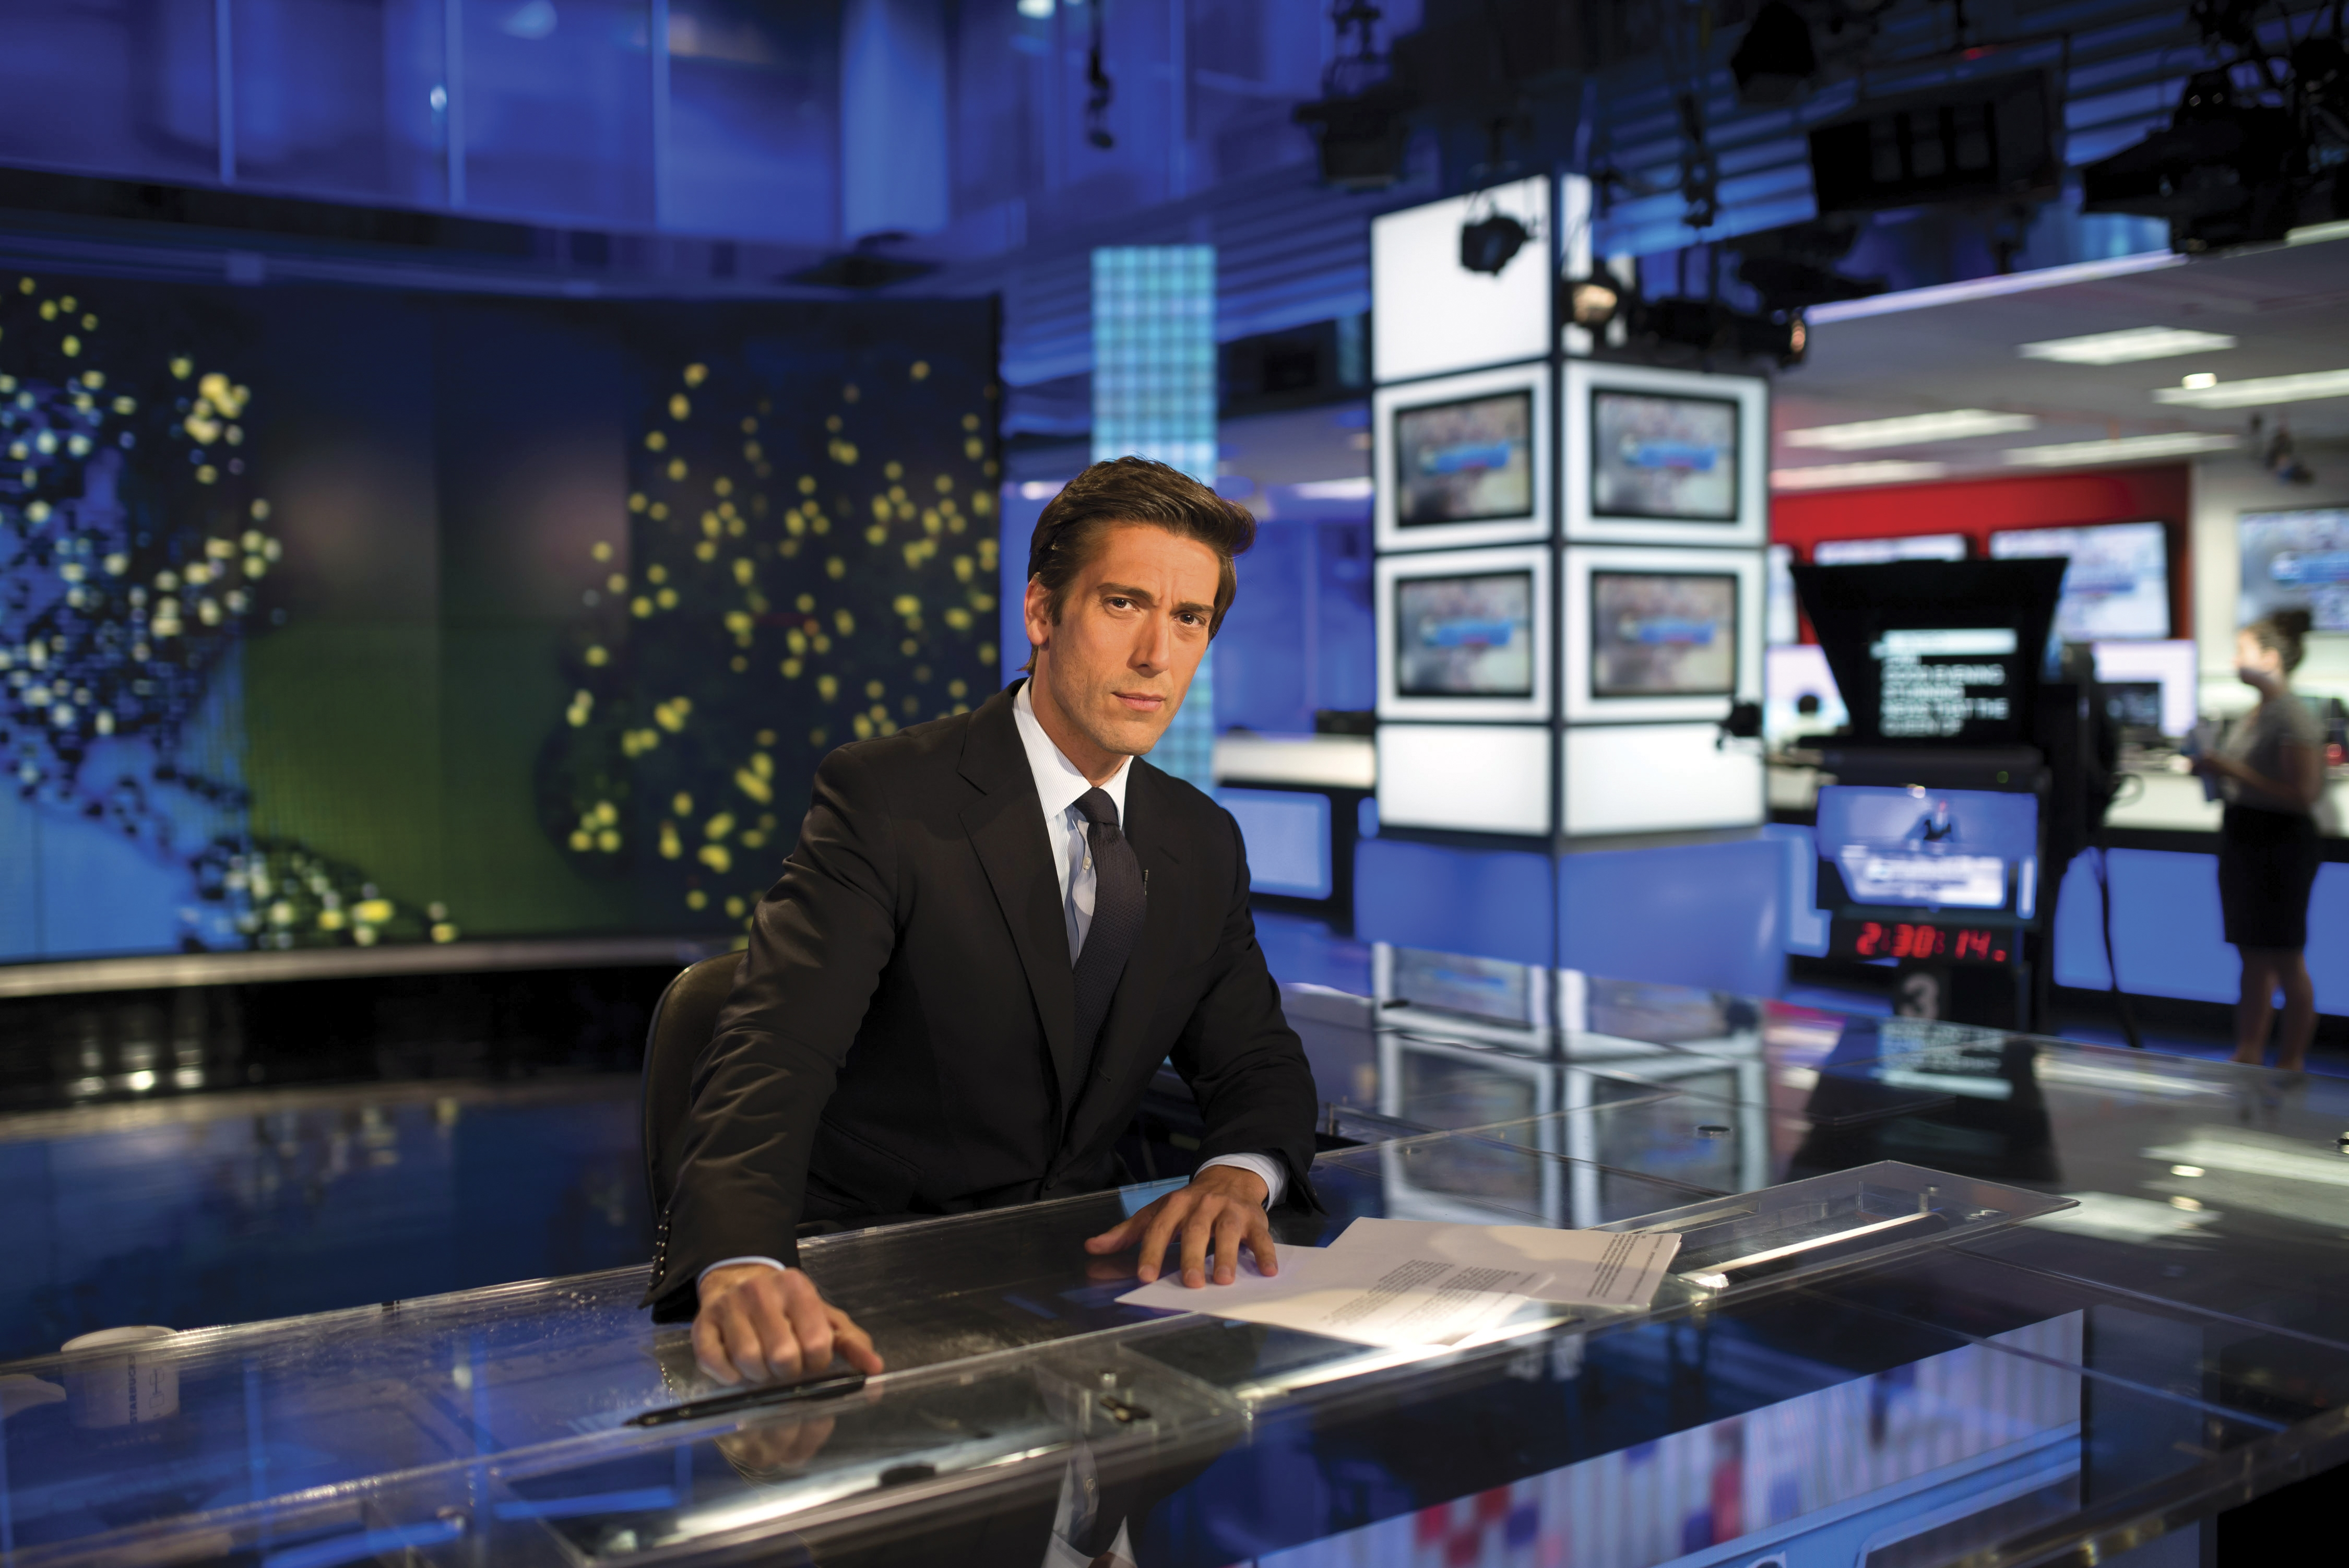 """At 40, David Muir of """"ABC World News Tonight,"""" will become the youngest national evening news anchor in 50 years, a hiring that represents the most aggressive attempt yet to find a nightly anchor for the modern era."""